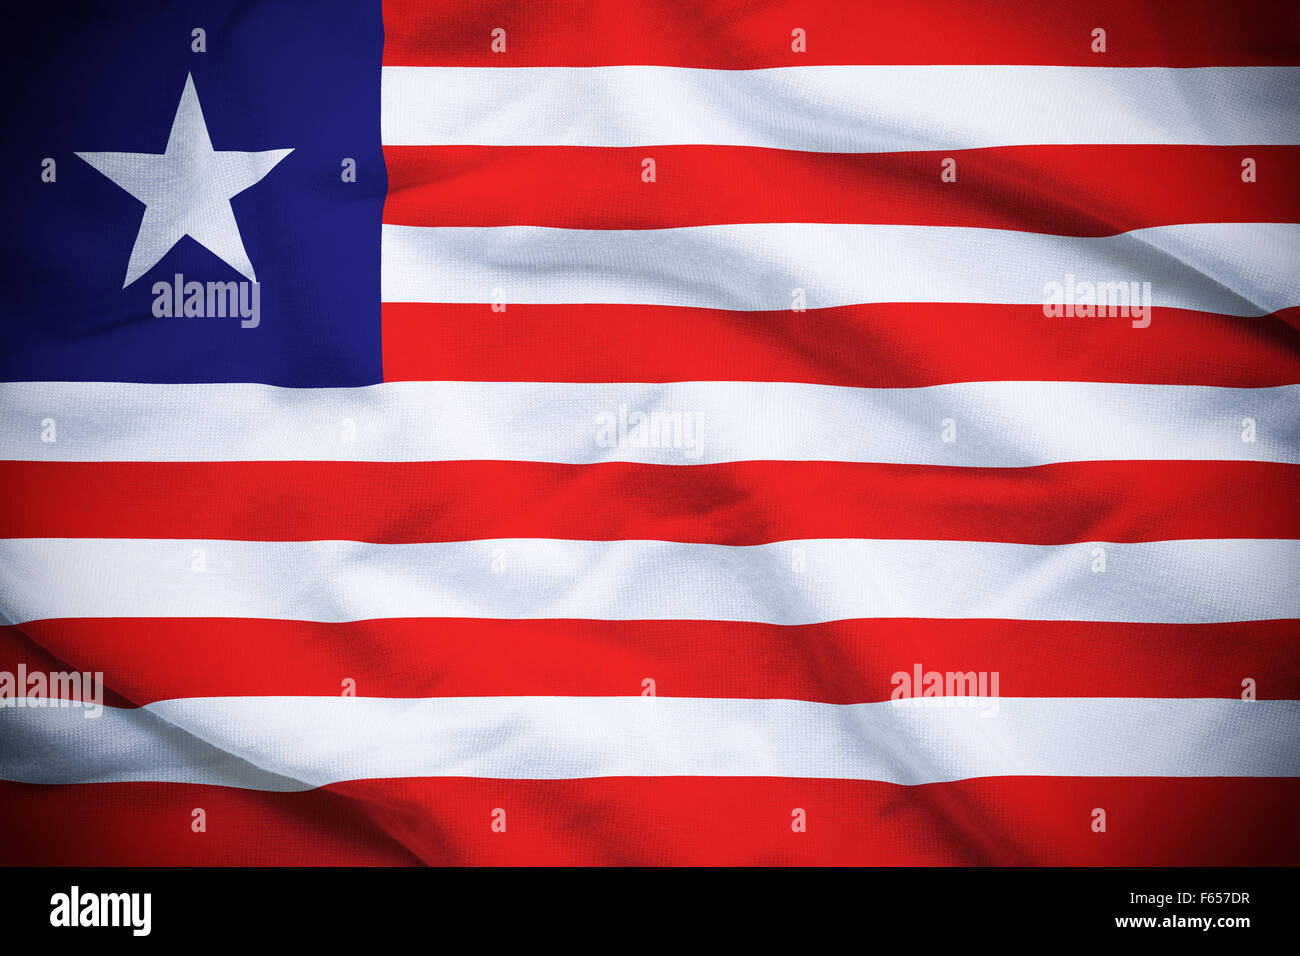 Wavy and rippled national flag of Liberia background. - Stock Image